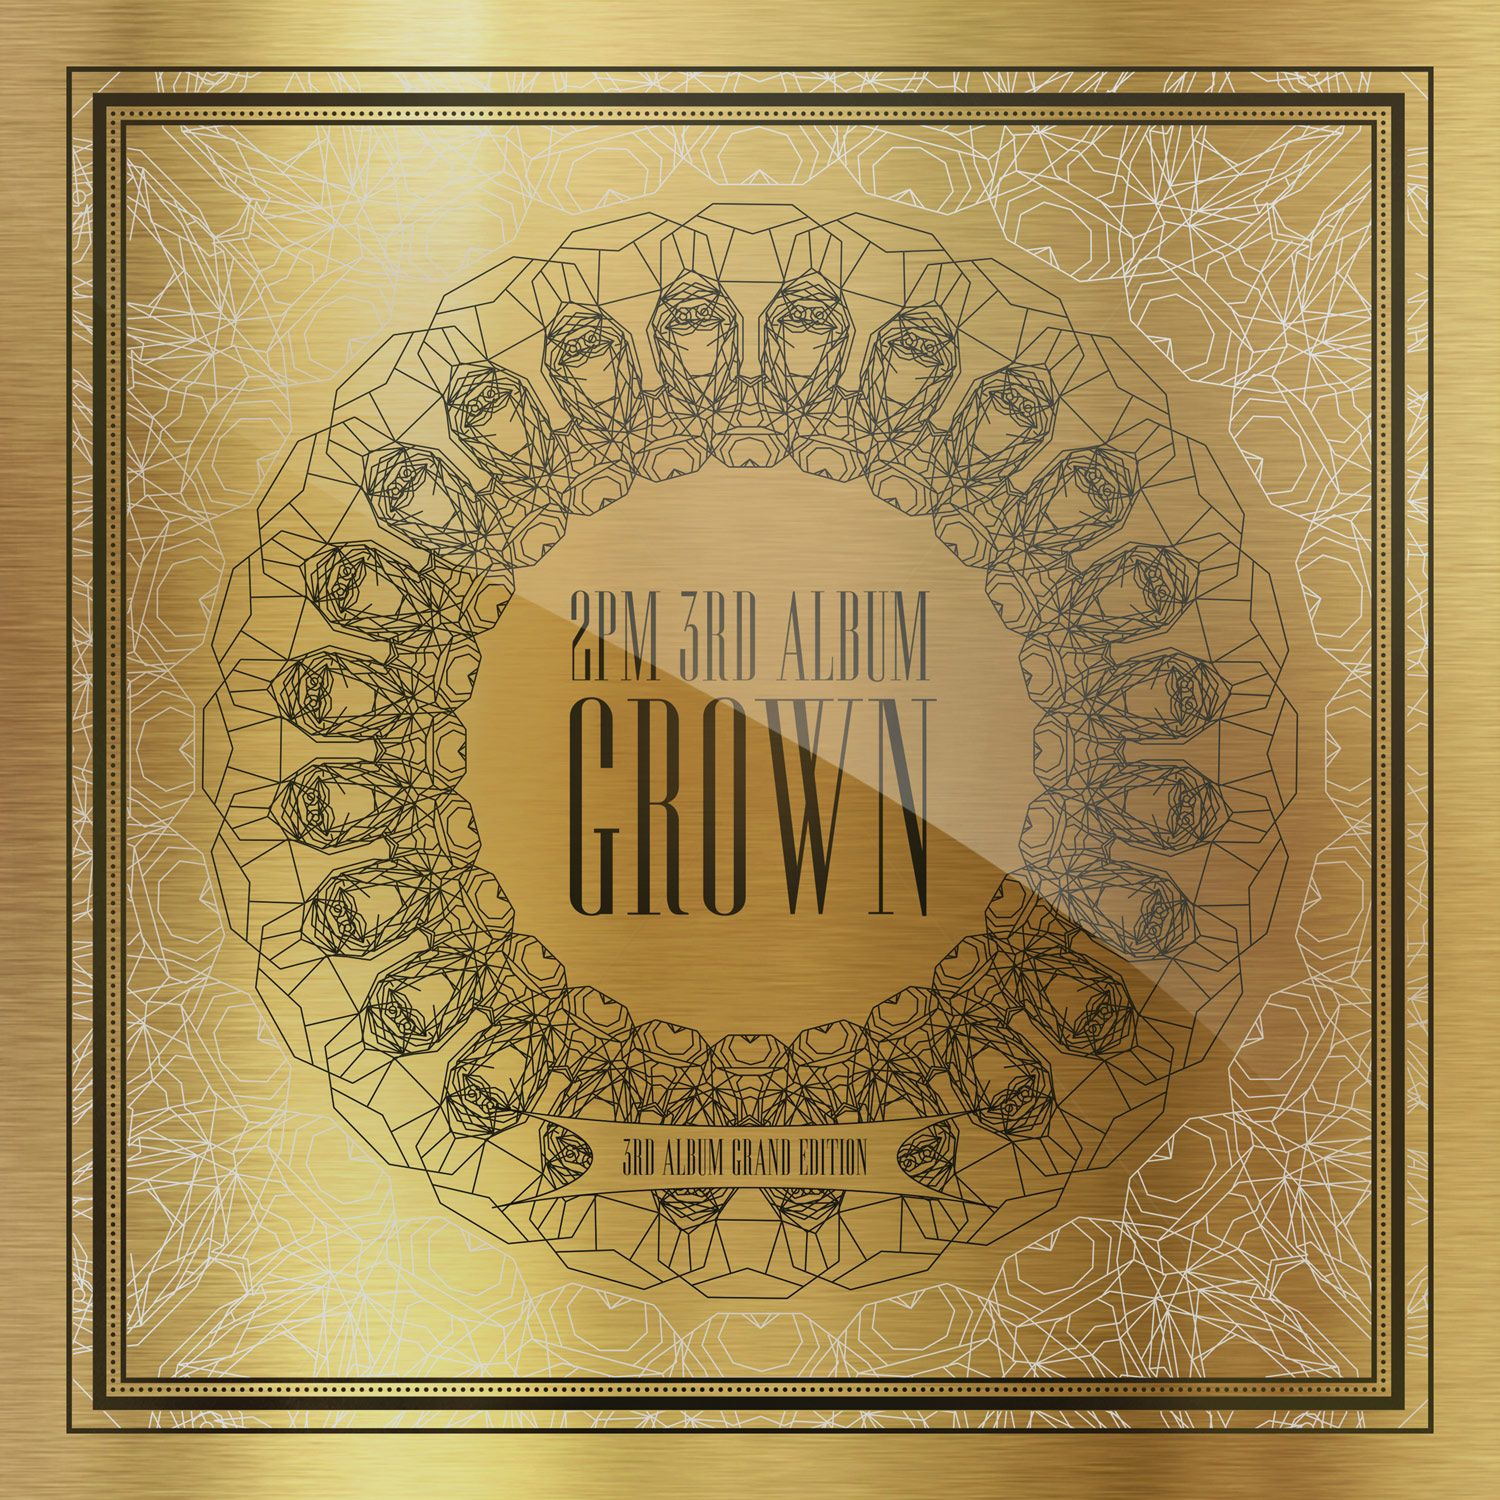 [Album] 2PM - Grown (Grand Edition) [Repakage]